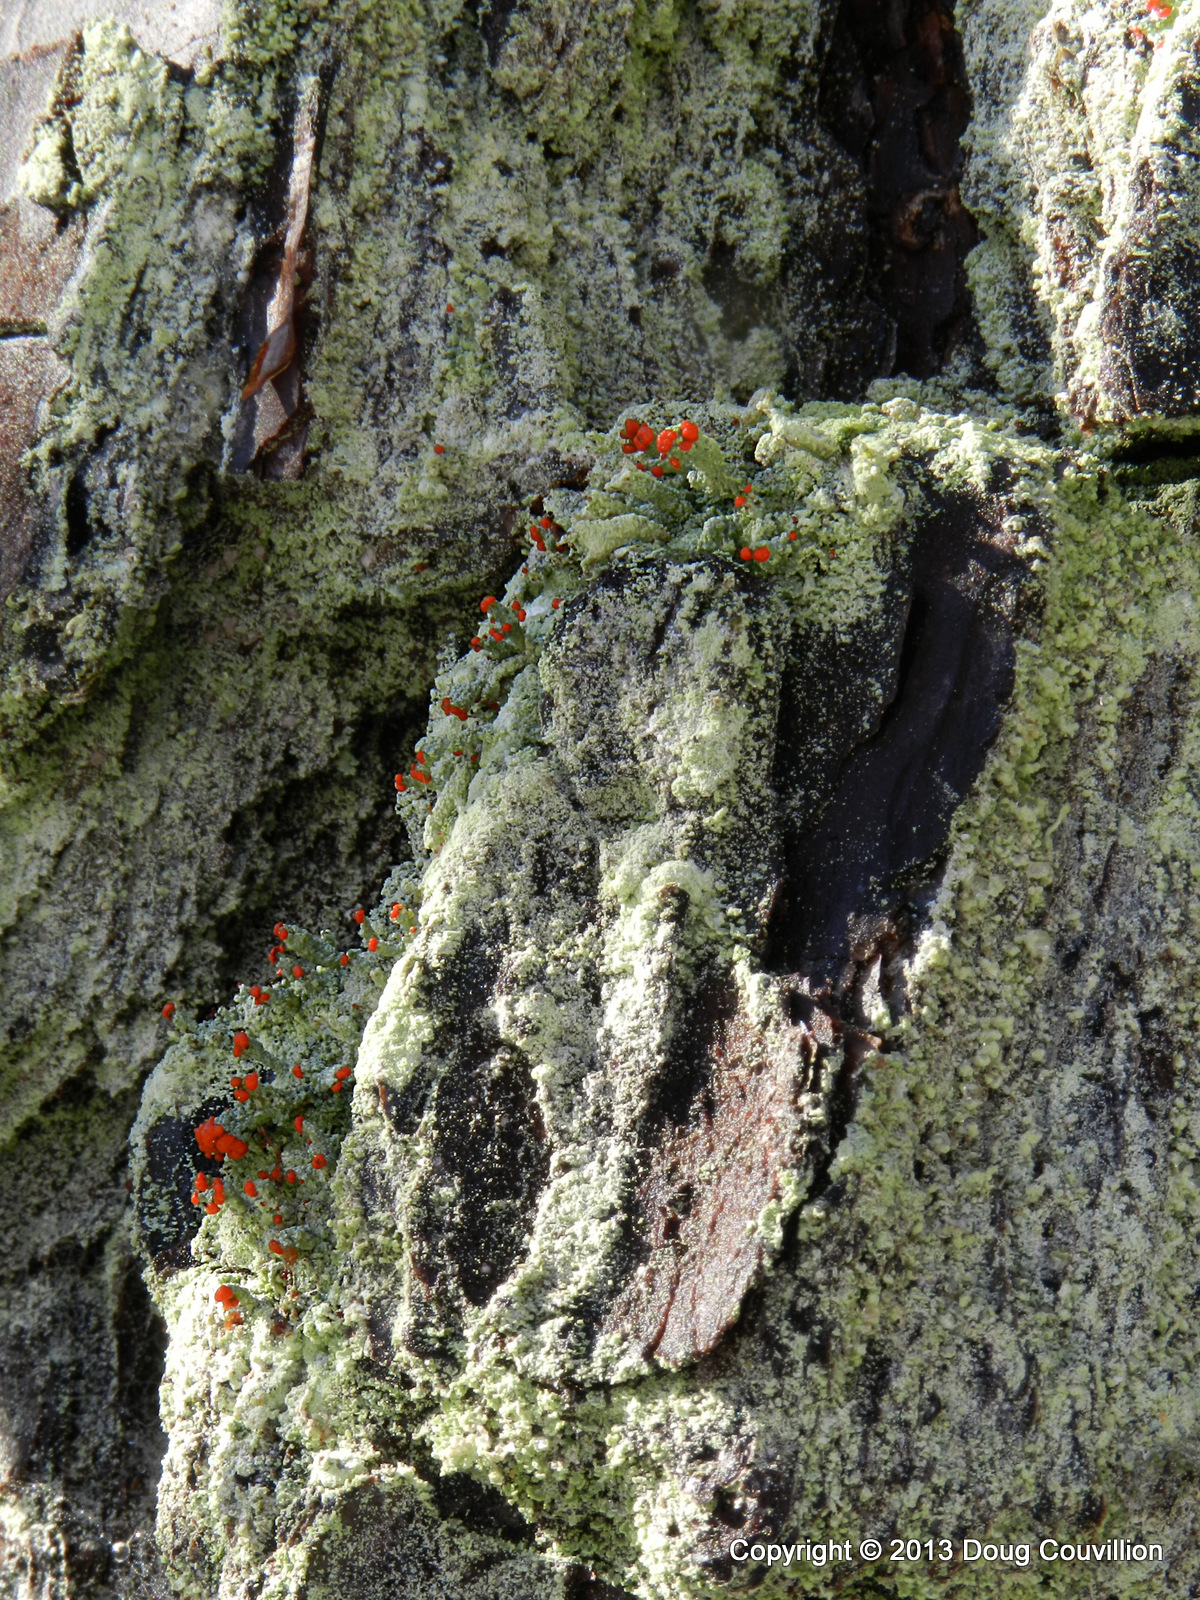 photograph of lichen blooming on the side of a tree